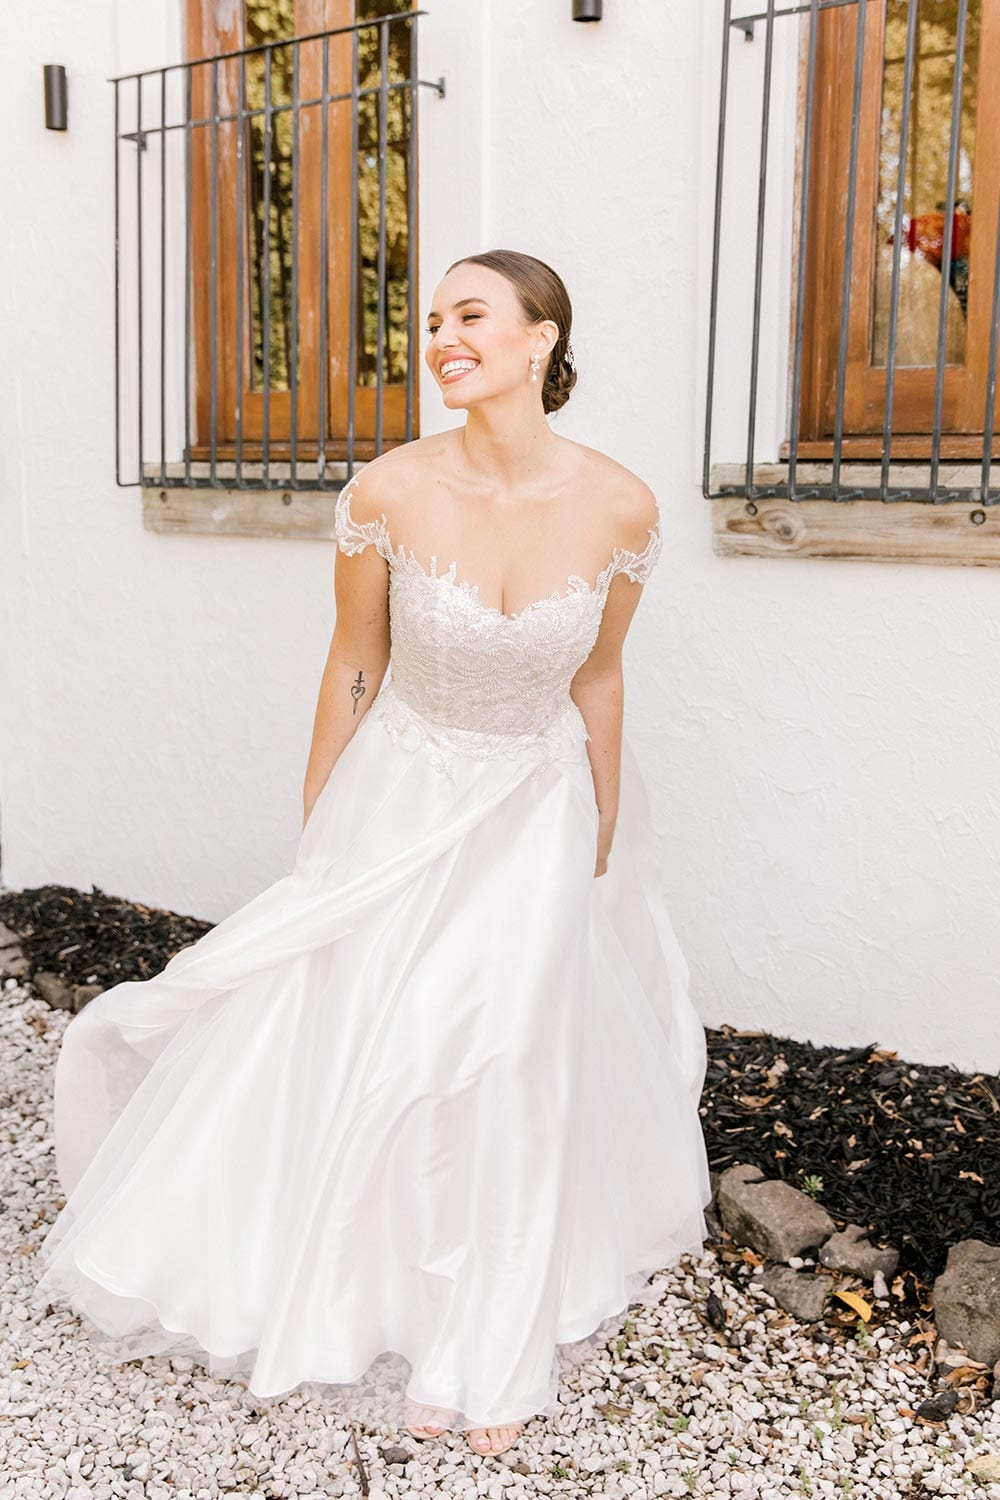 Lena Wedding Dress from Vinka Design. Gorgeous wedding dress with fitted bodice & dreamy silk chiffon & tulle skirt. Off-shoulder detail with an illusion neckline made with fine Italian tulle & lace detail. Full length with dress flowing. Photographed in front of beautiful old building.